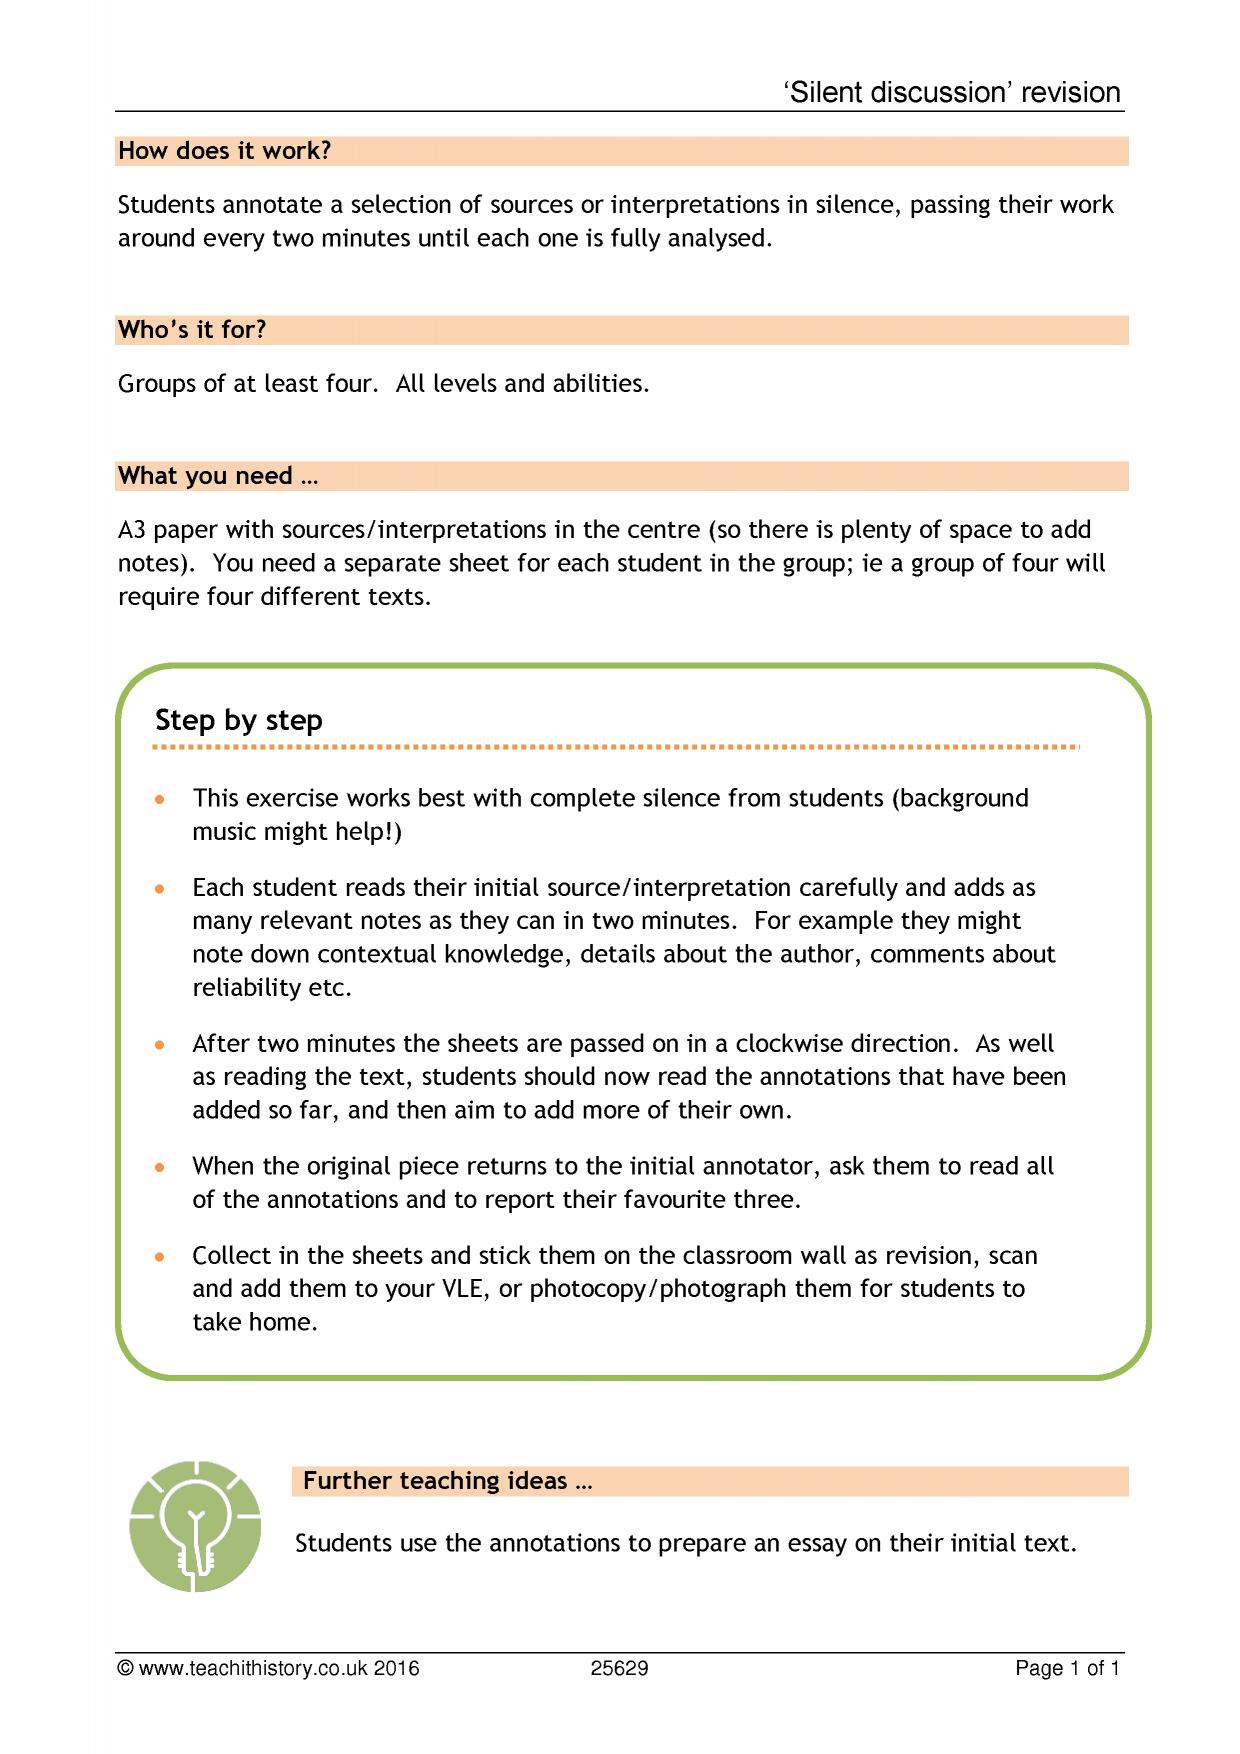 teachit history history teaching template resources 0 preview